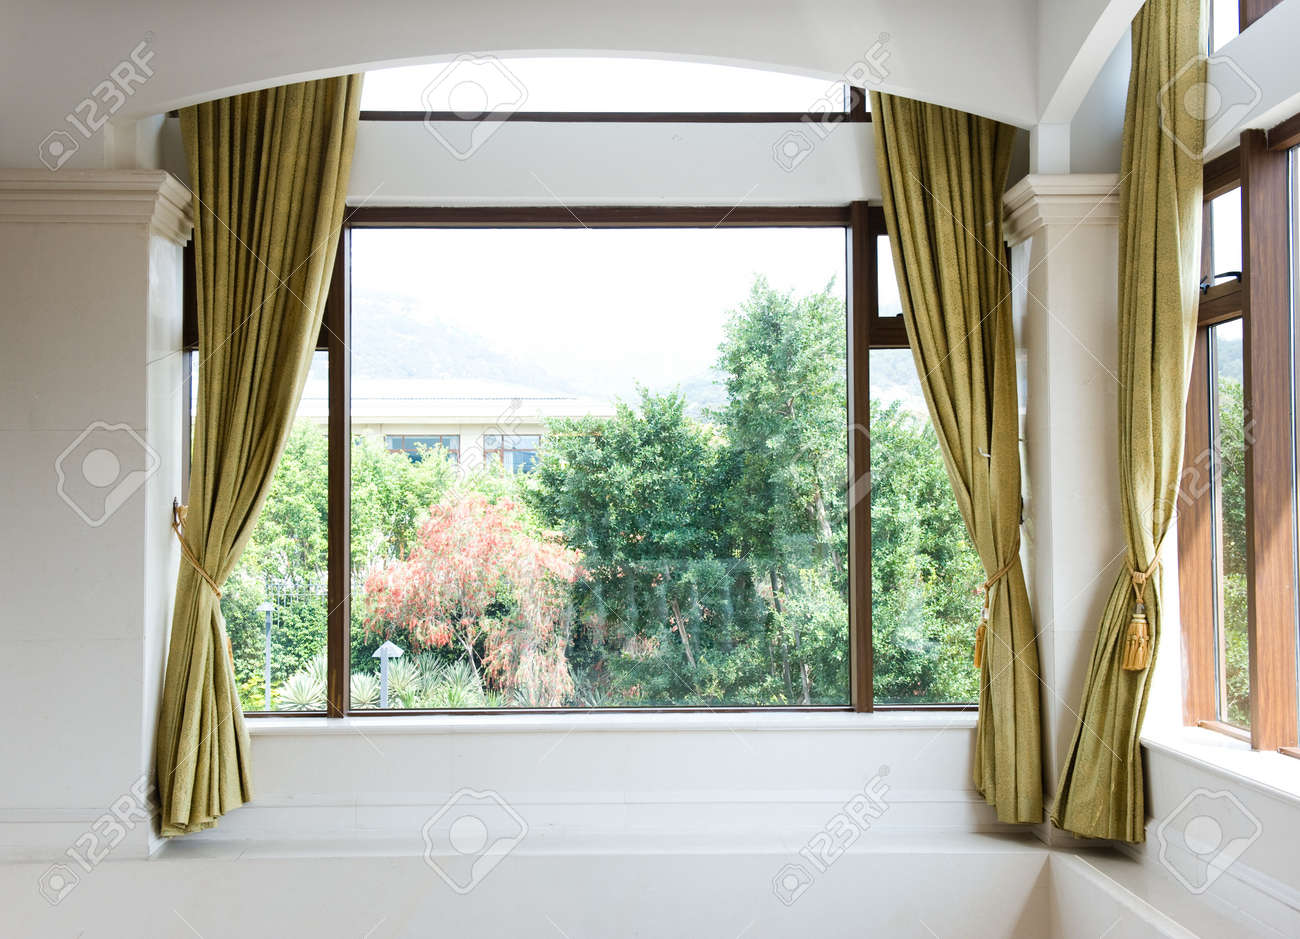 Window And Curtains With Garden View . Stock Photo   13265958